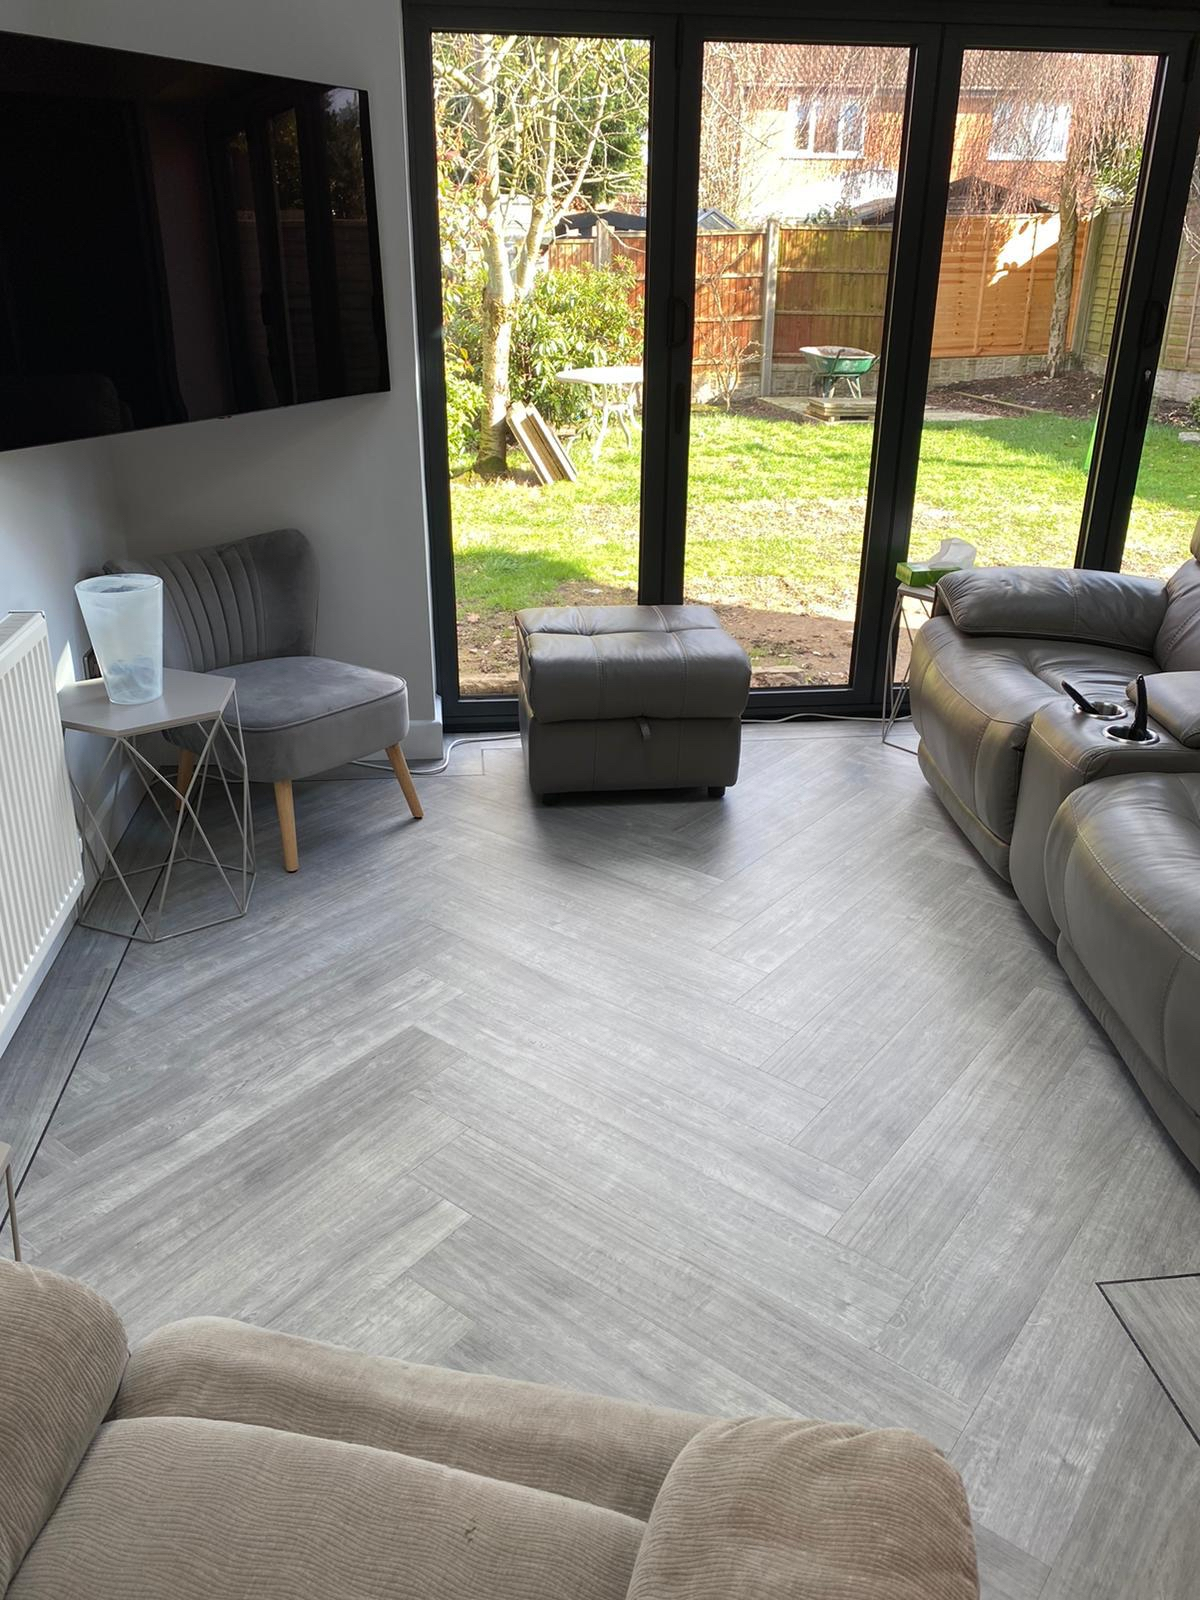 Karndean in large herringbone pattern to kitchen and family roomeh